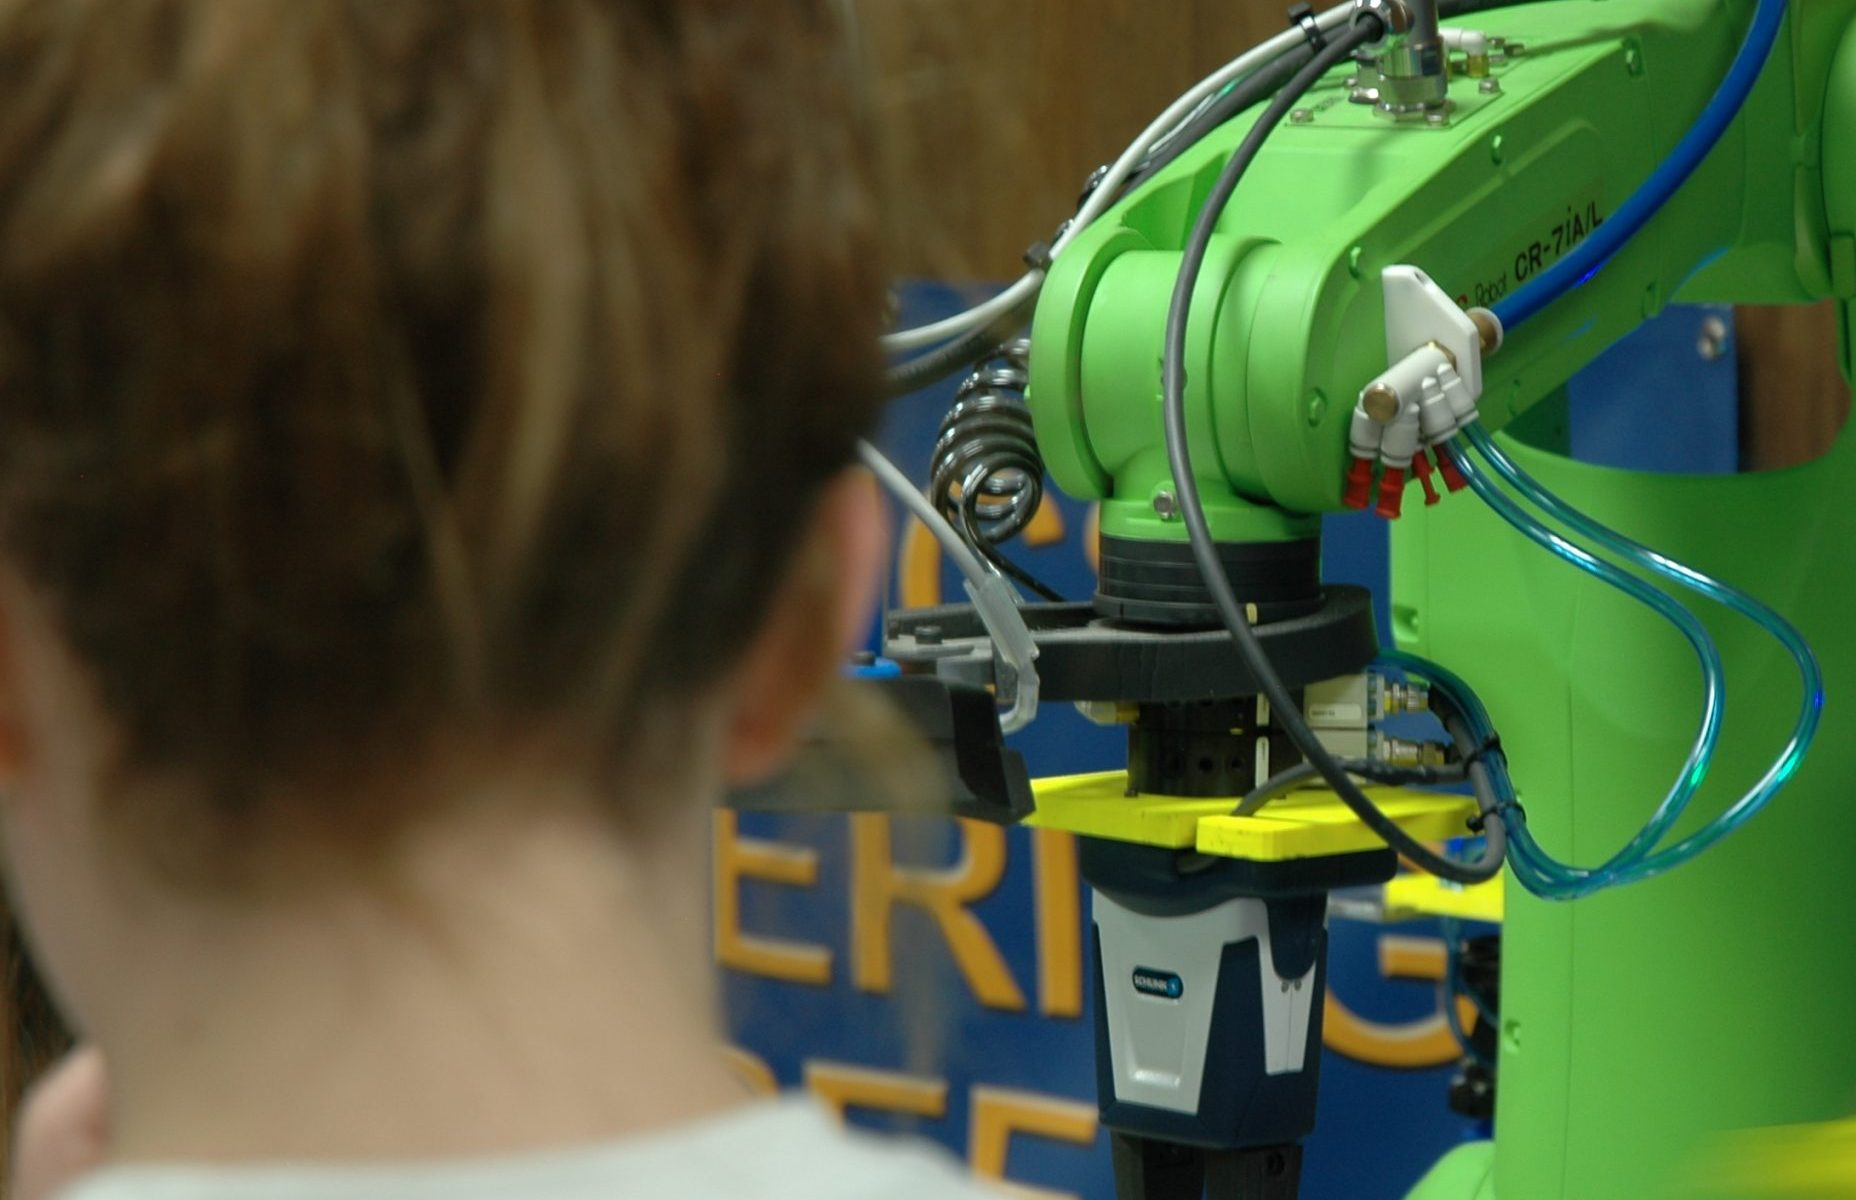 Image with a student in the foreground, and a green robotic arm in the background, which is in focus.